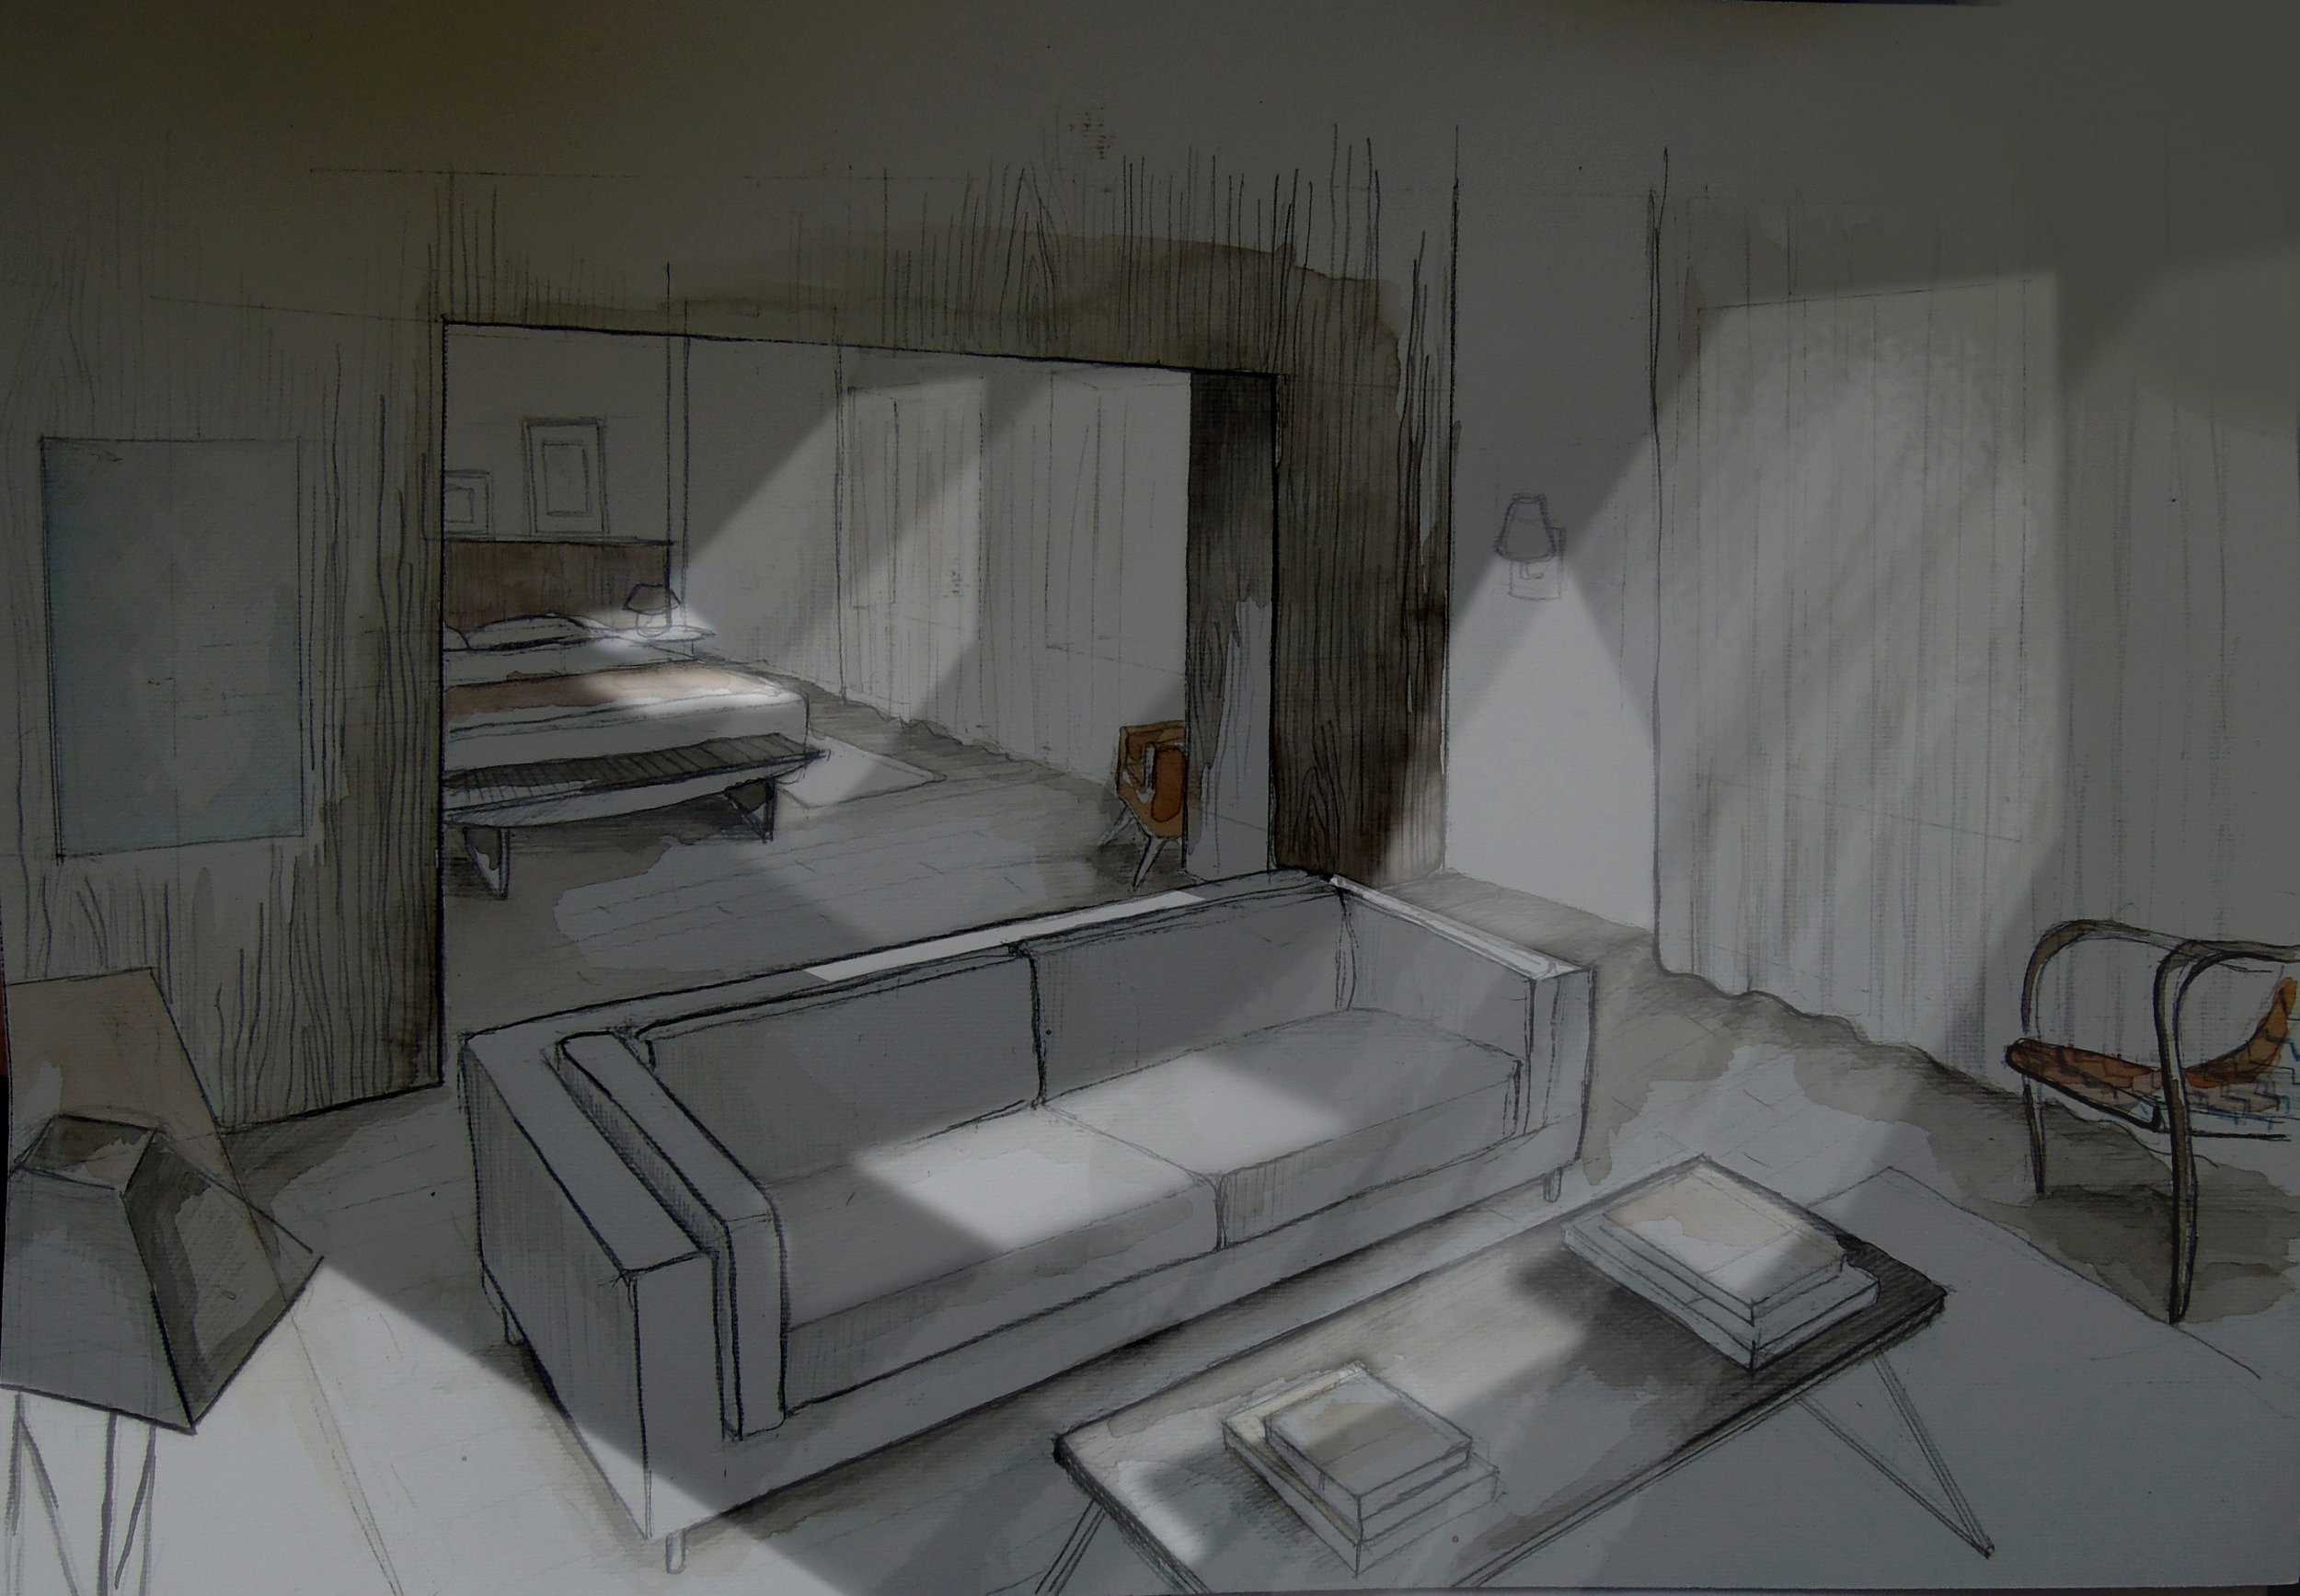 Film set rendering for 'The Practical Guide to Belgrade with Singing and Crying' by B.Vuletic and S.Arsenijevic